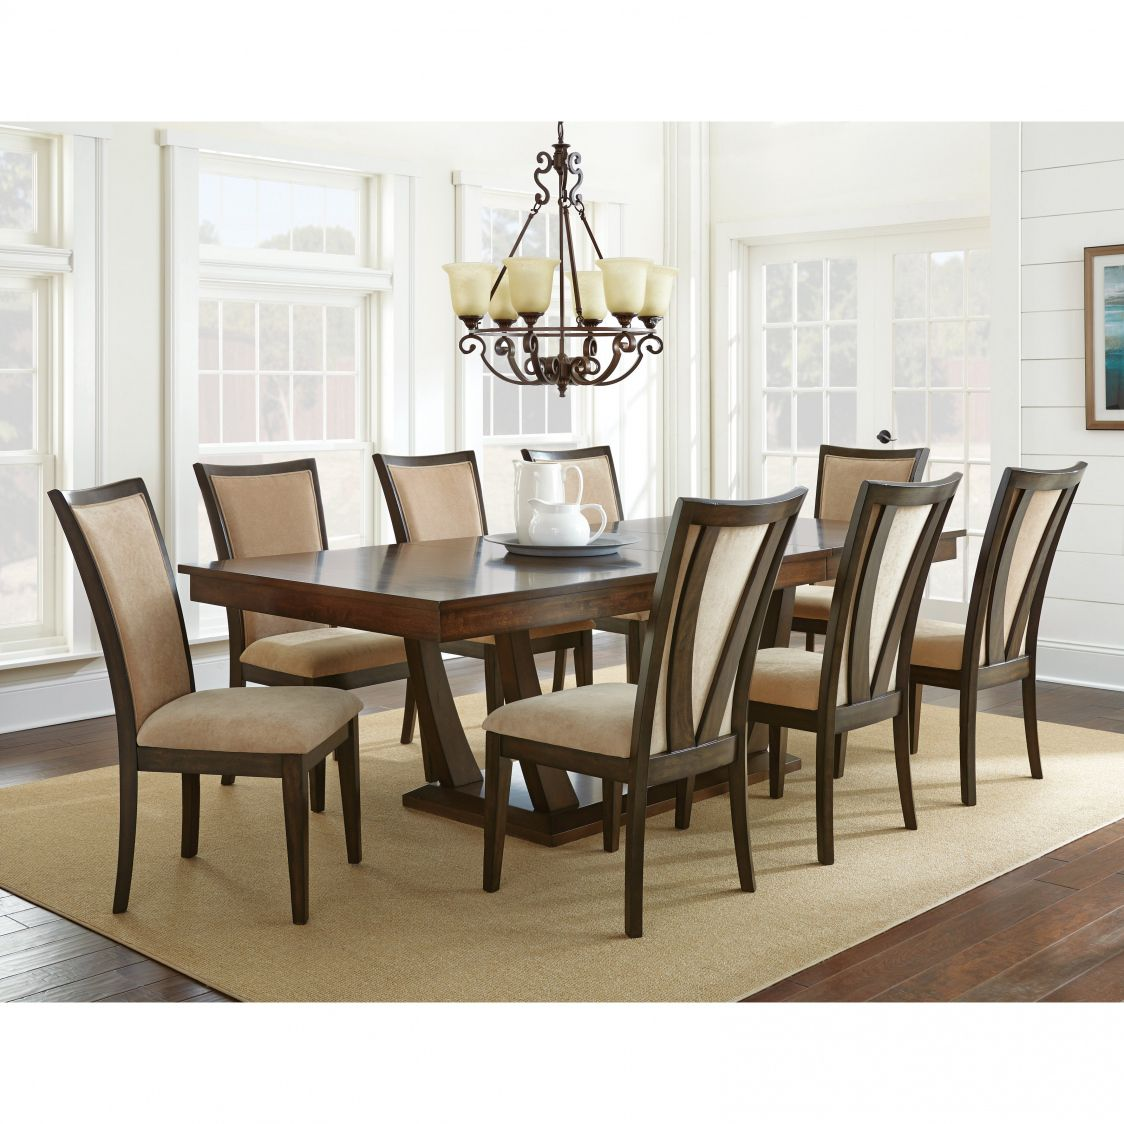 Attrayant Steve Silver Gabrielle 9 Piece Dining Table Set   Medium Walnut   Modern  Elegance Lives In The Steve Silver Gabrielle 9 Piece Dining Table Set    Medium ...